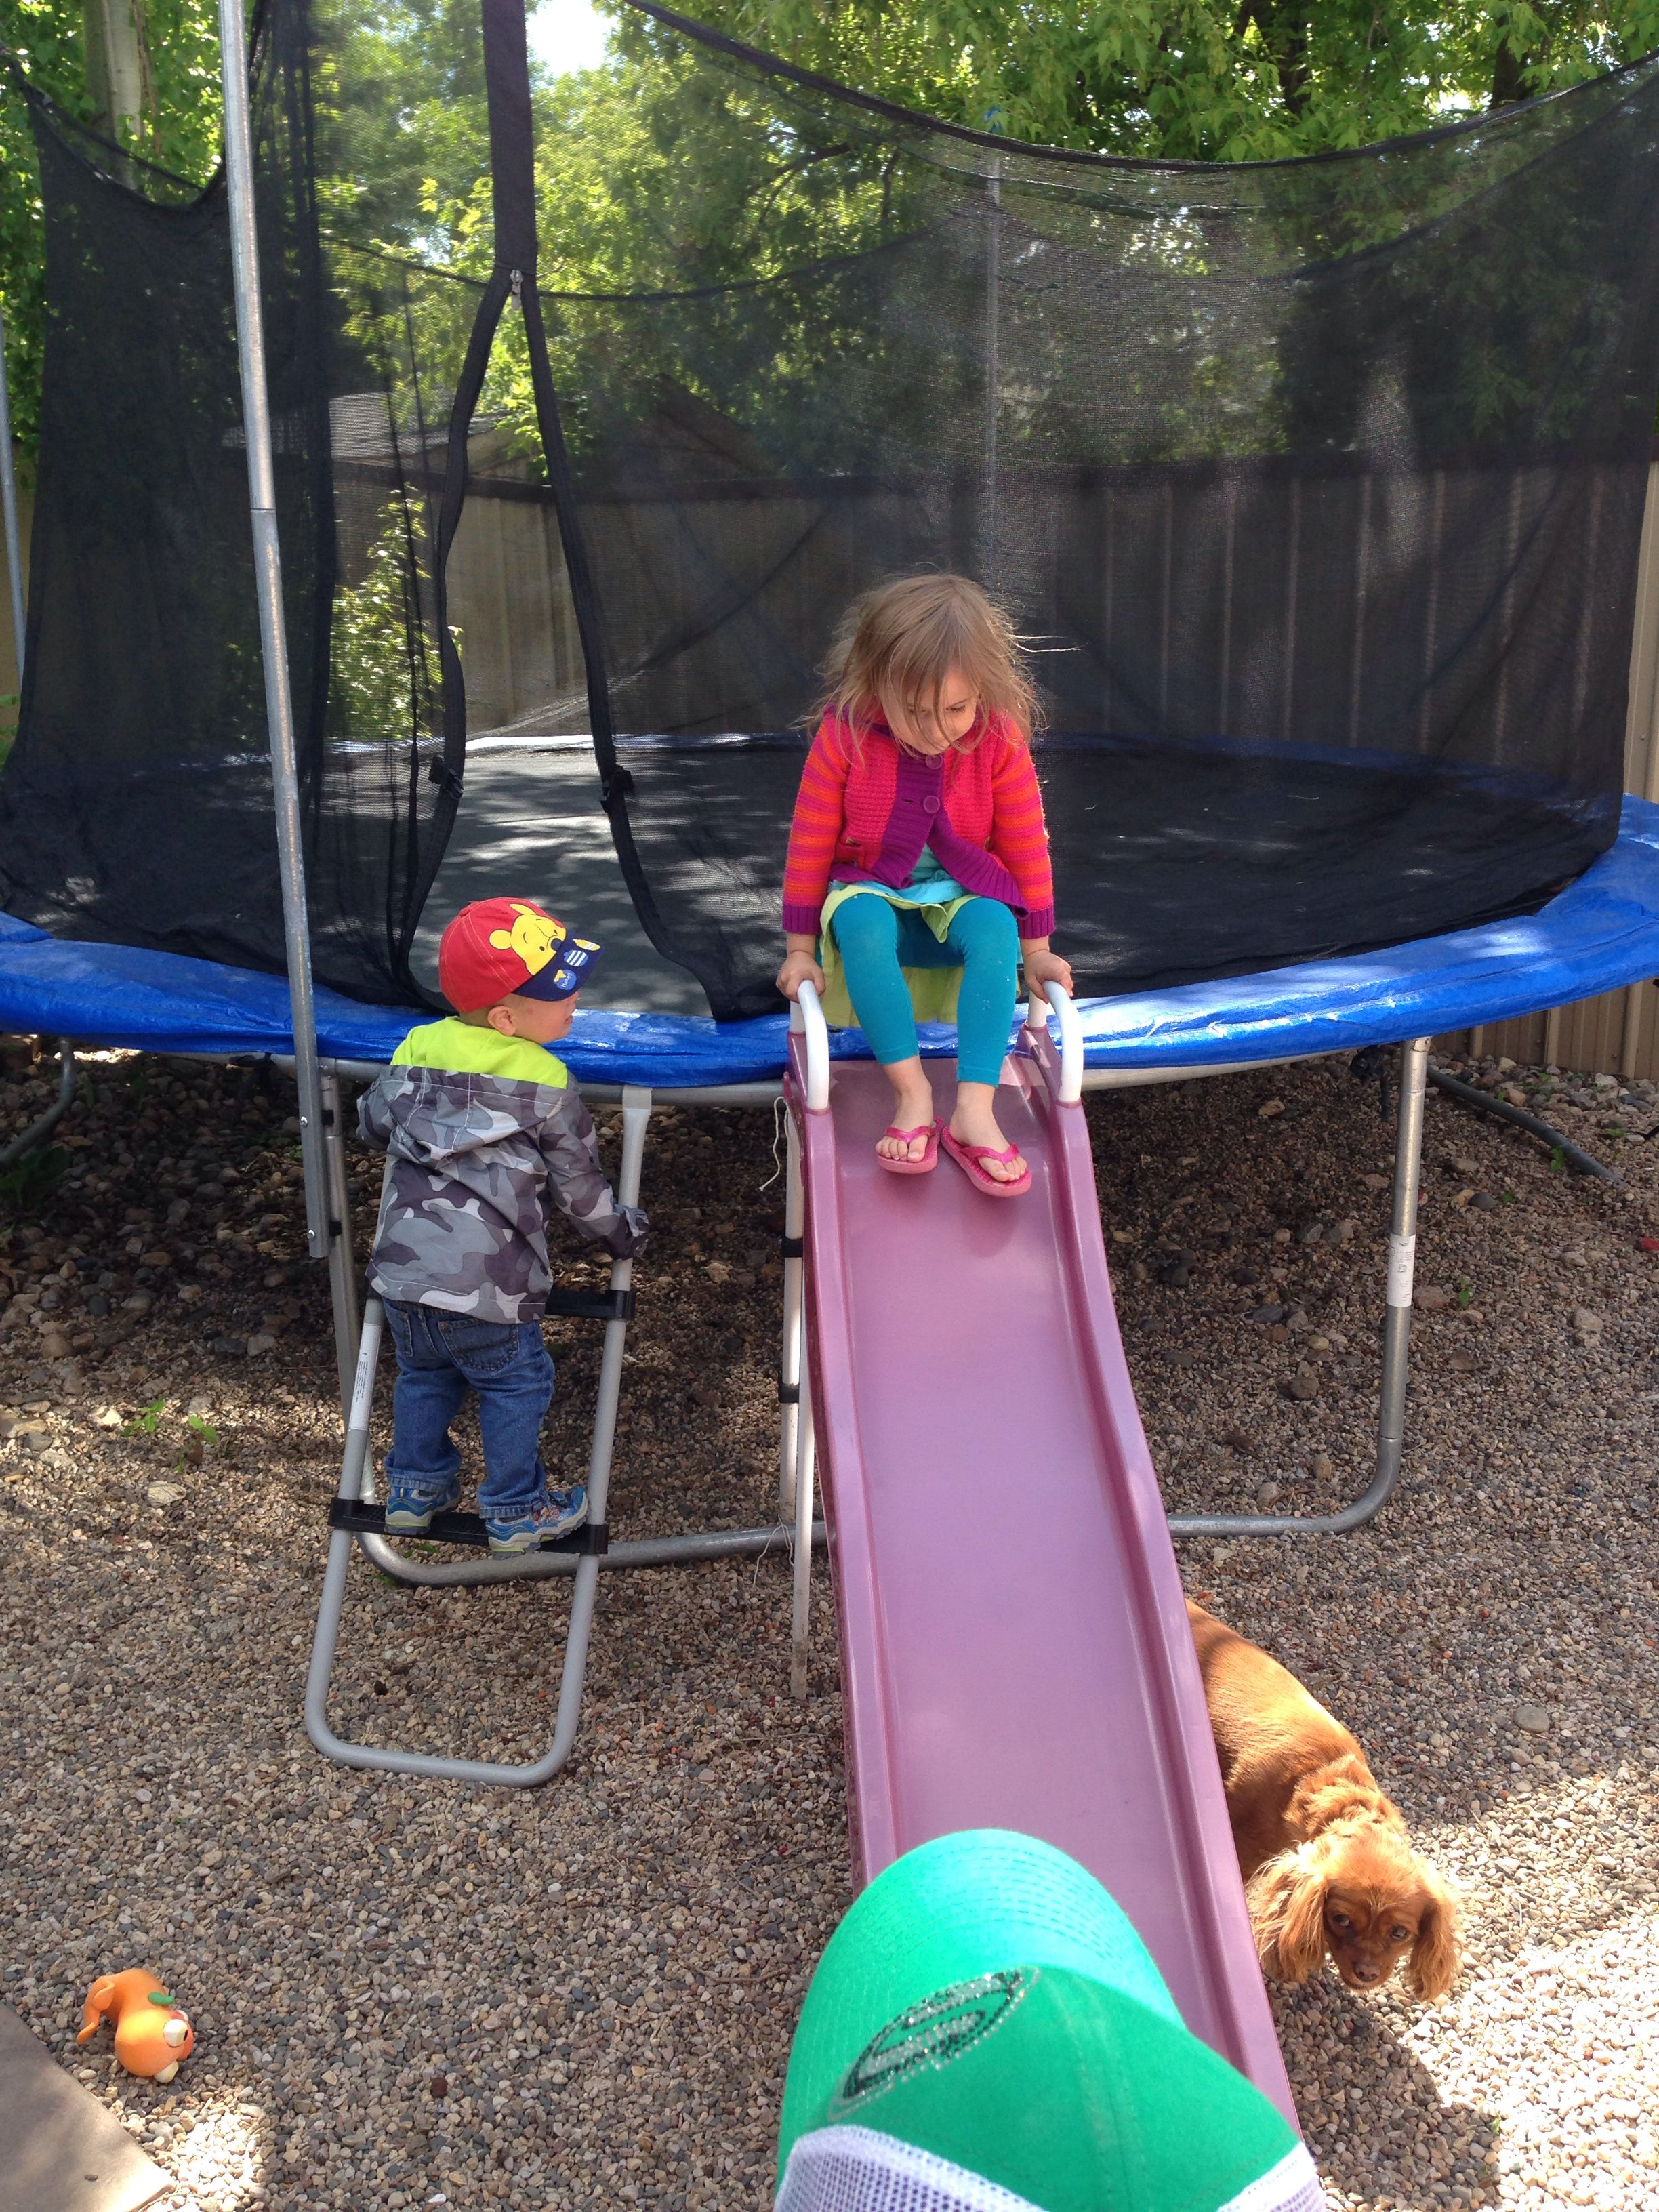 Attach a slide to trampoline so it's easier for little